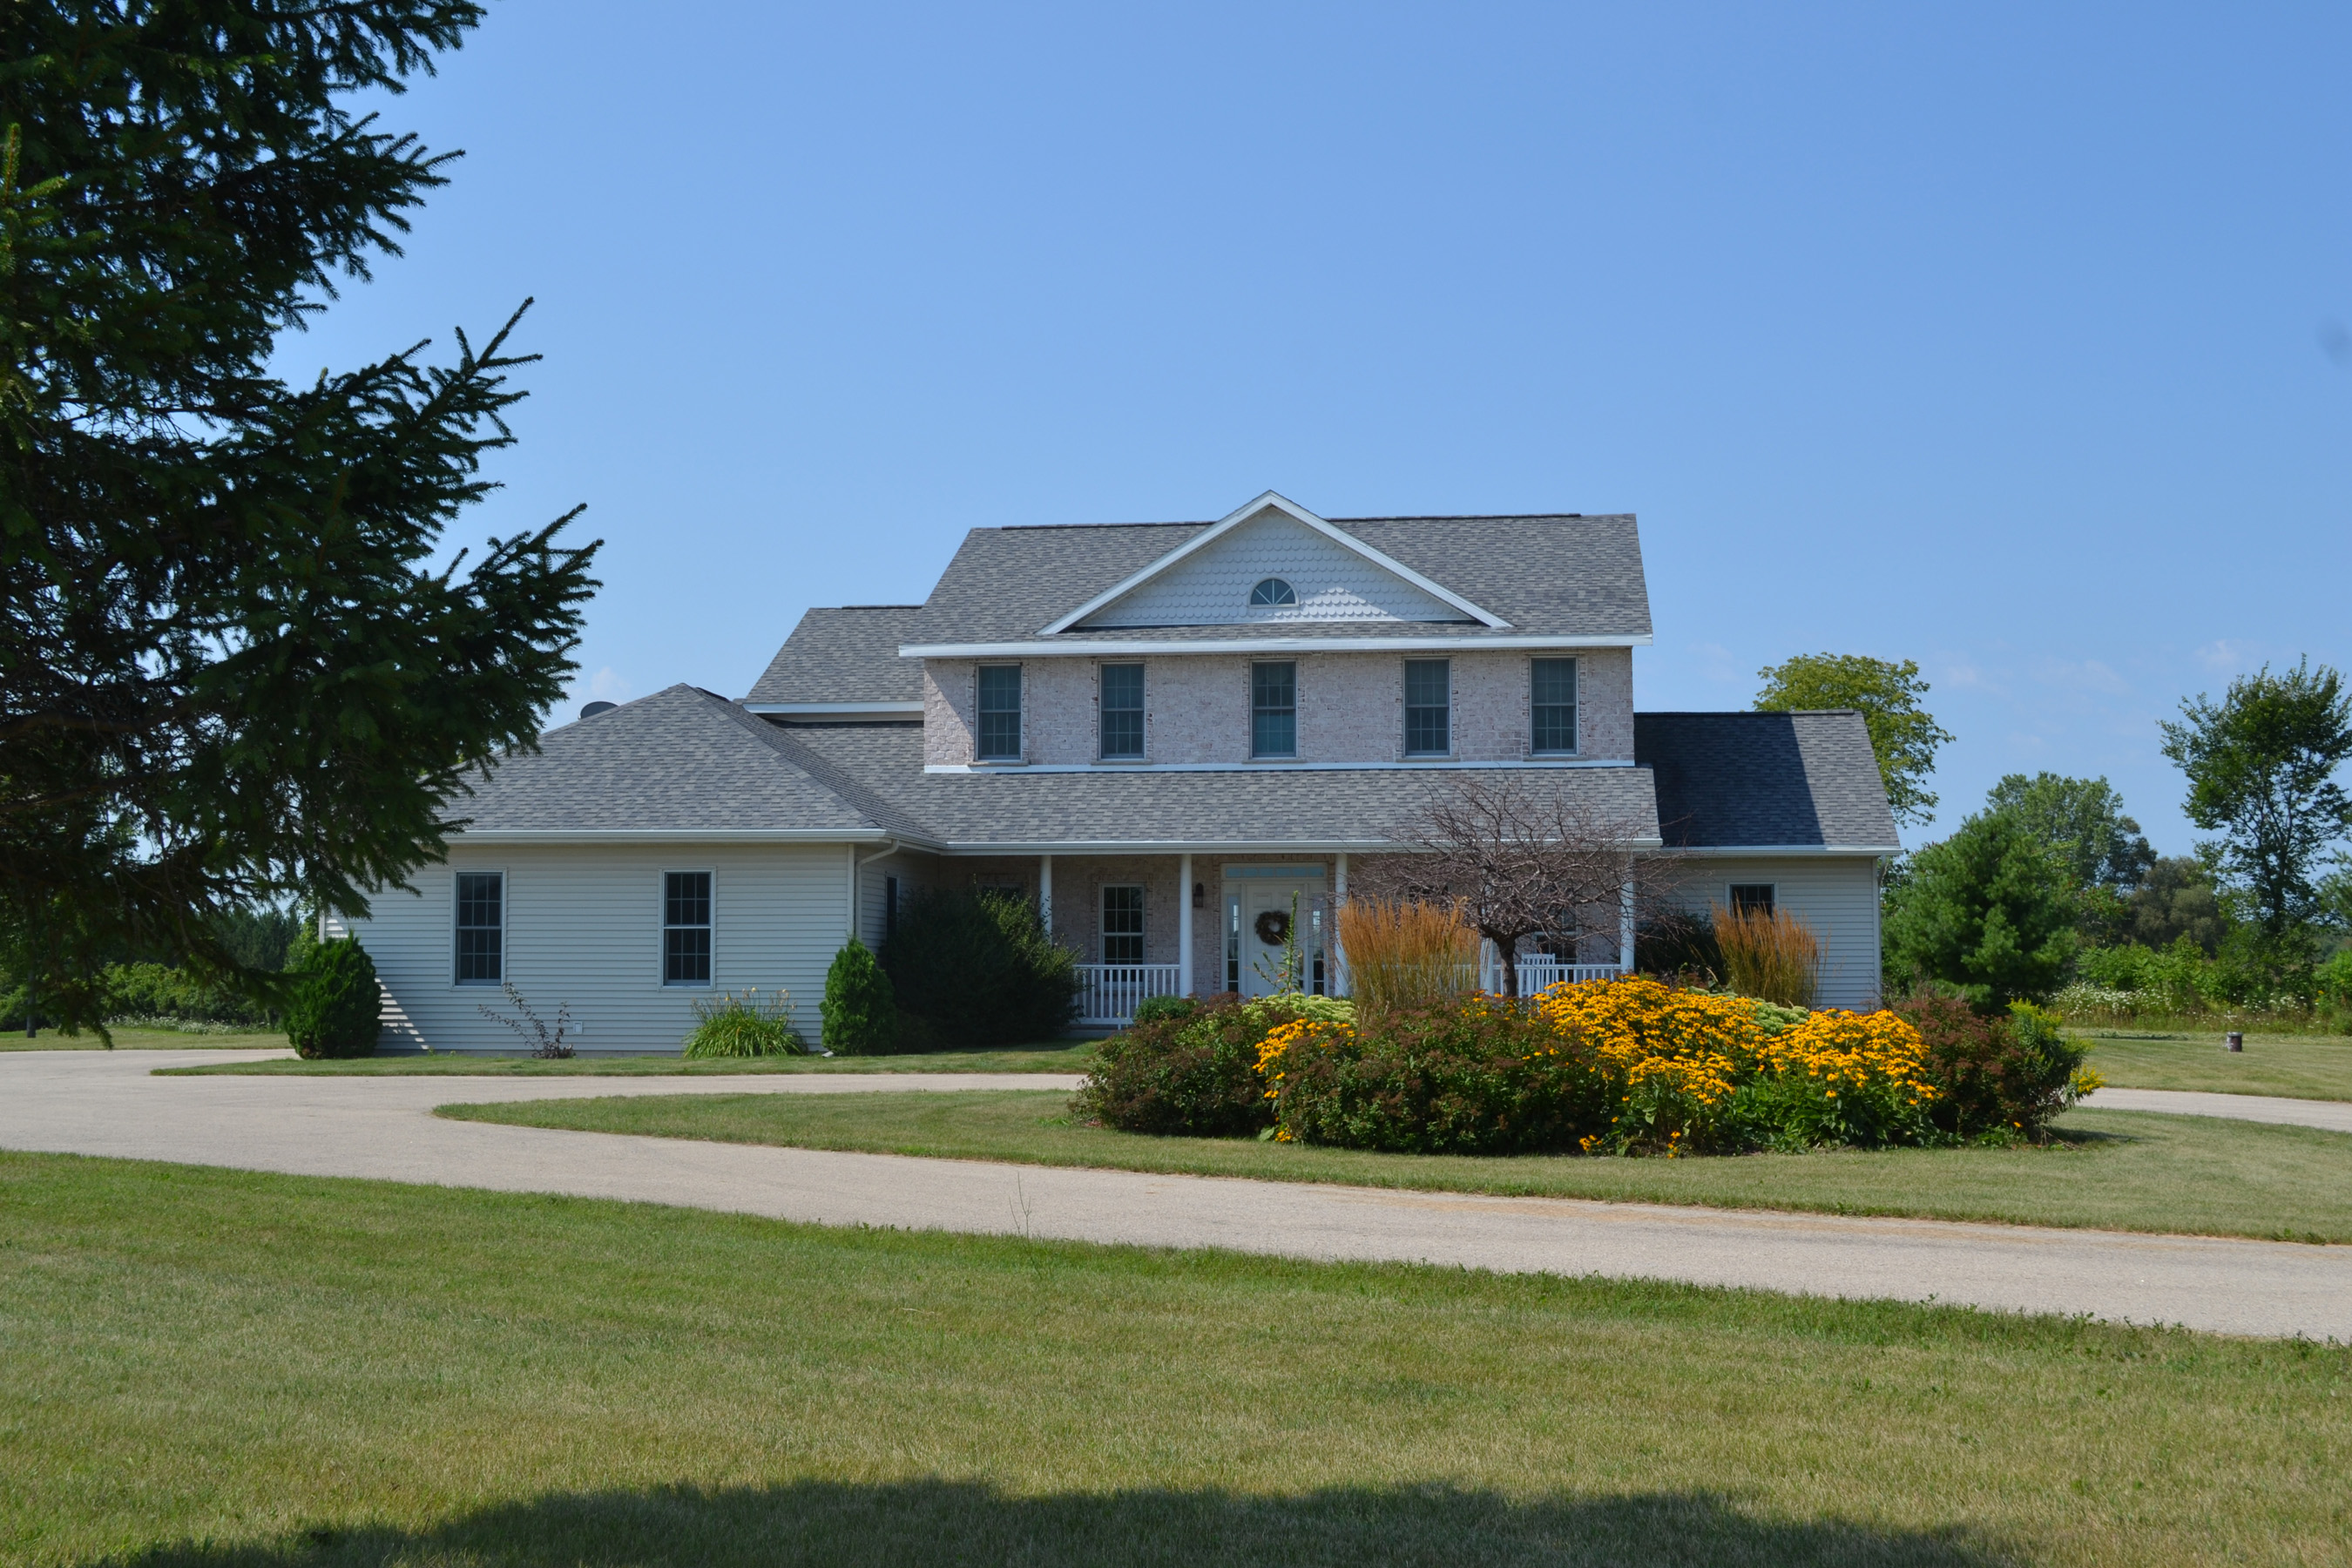 W9393 West 14th Road, Coleman, Wisconsin 54161